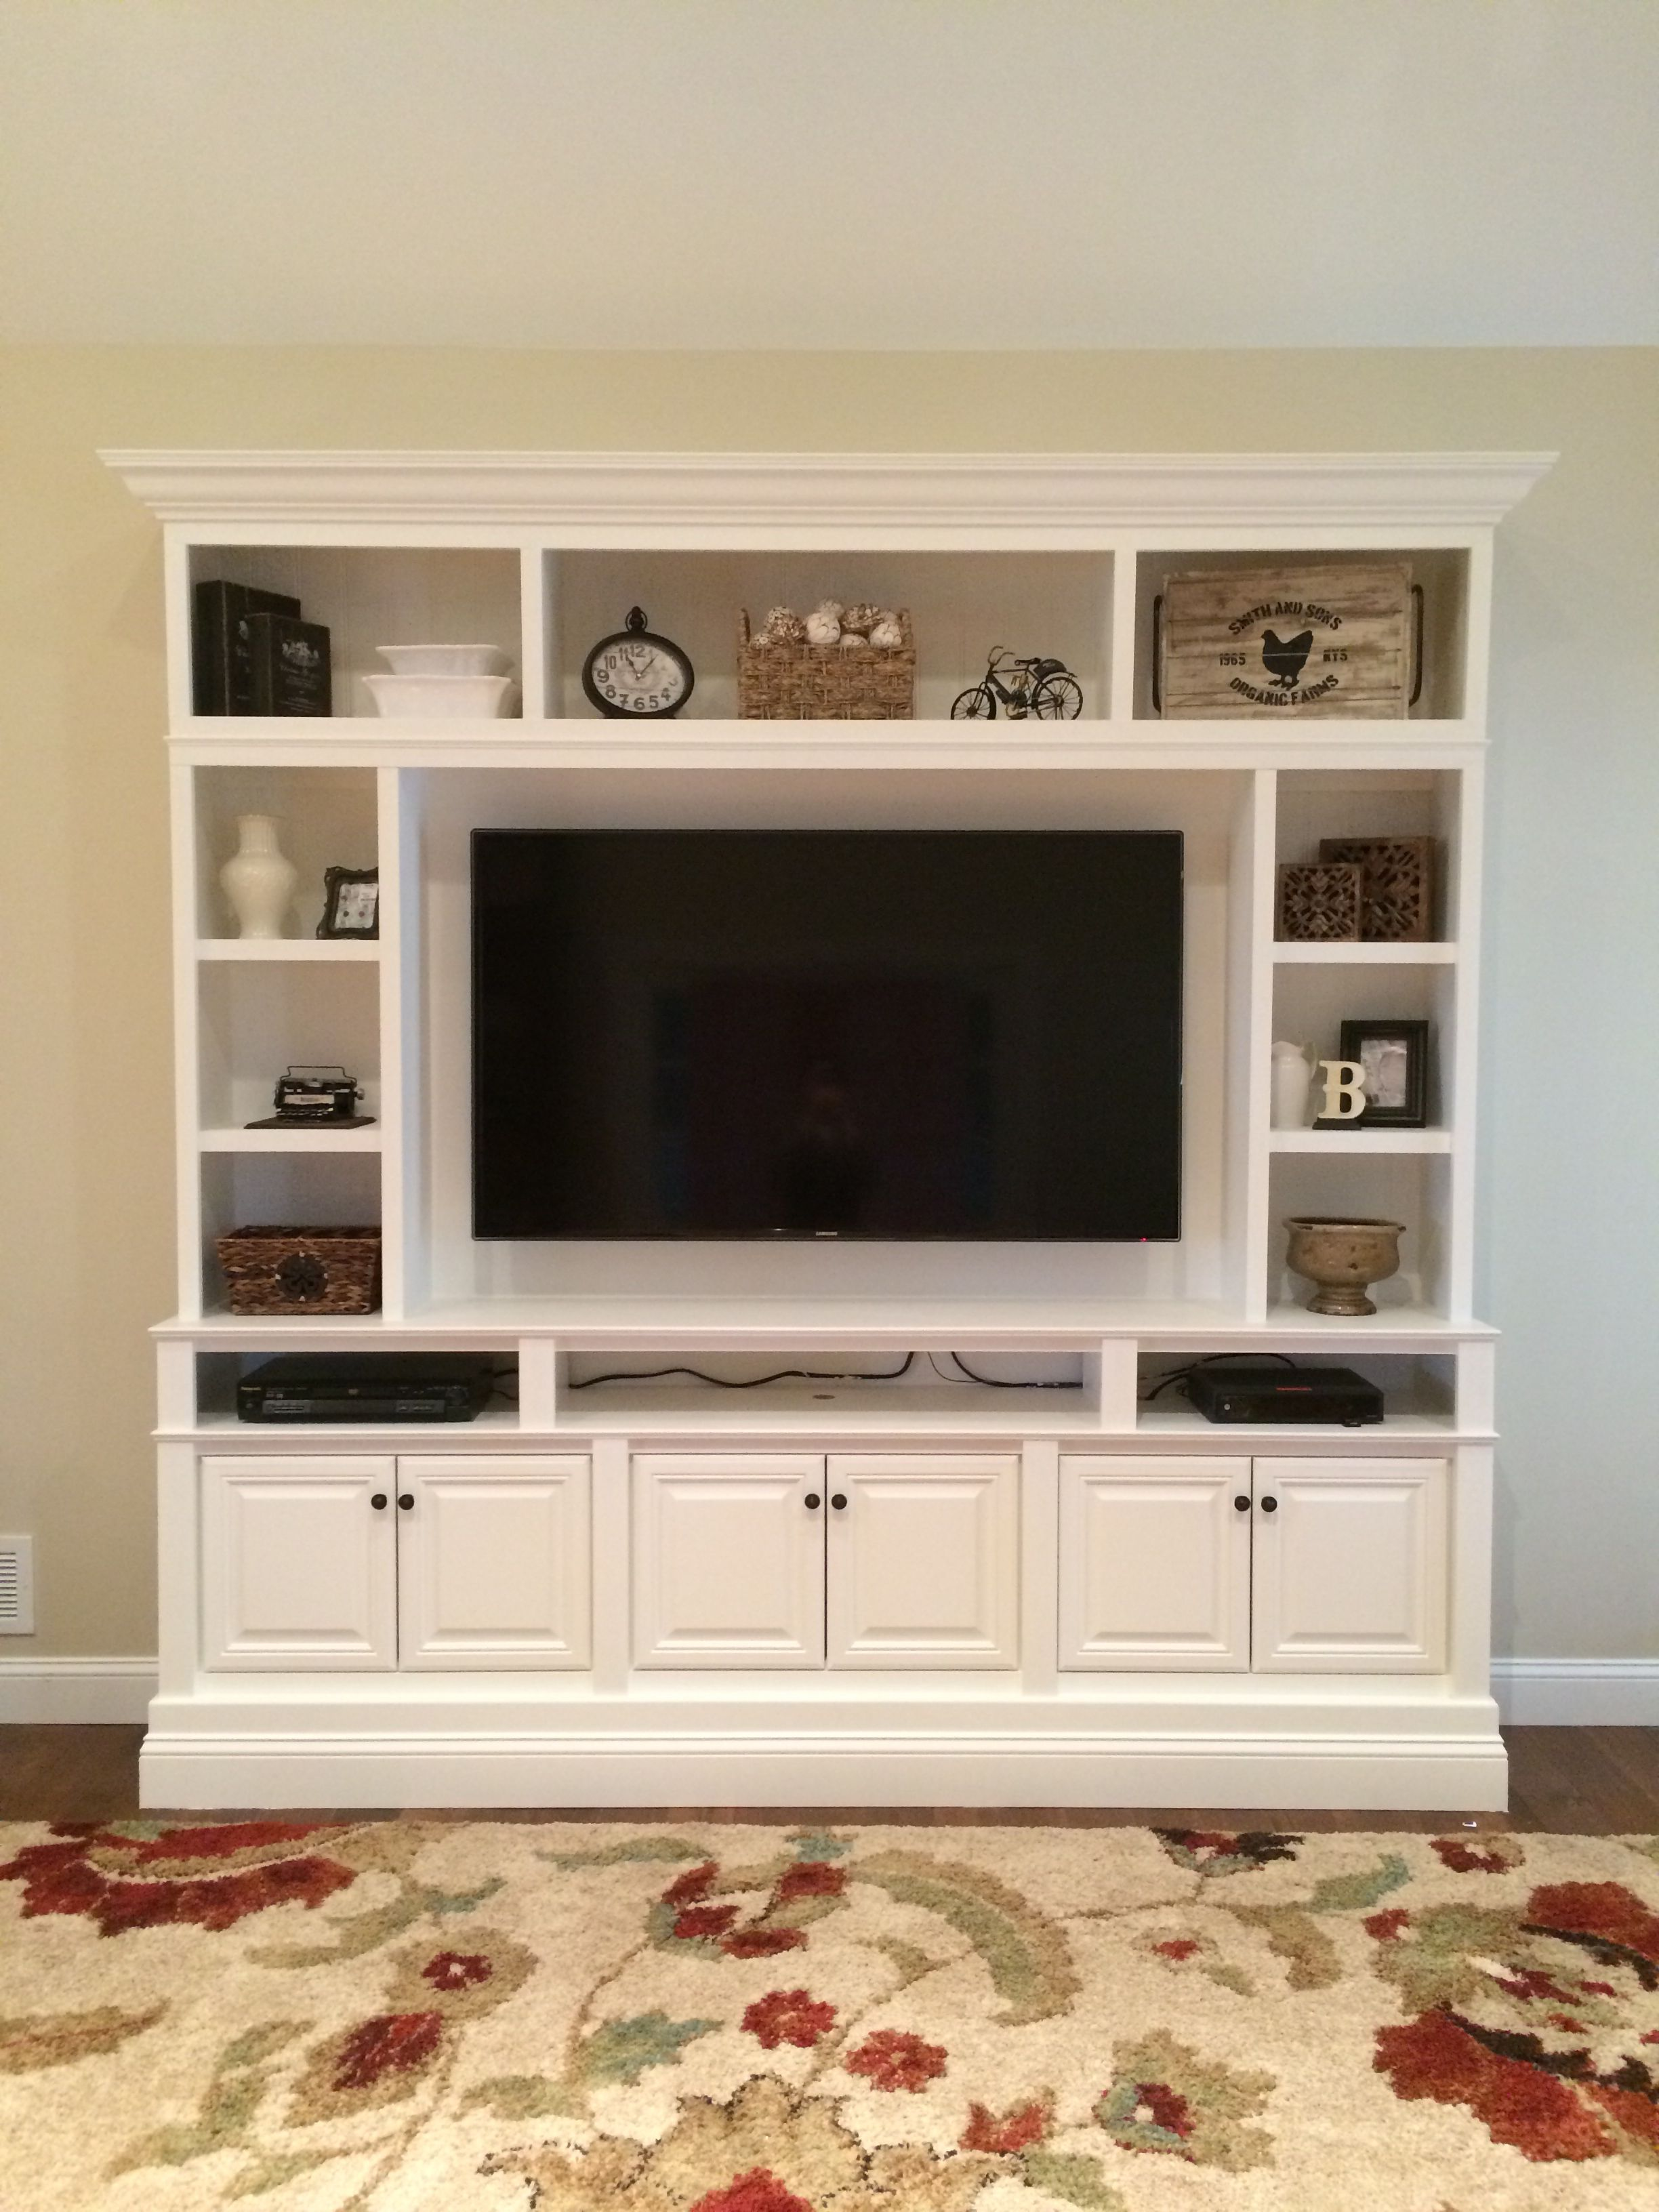 Downright Simple This Is My Diy Built In Wall Unit Made For 60 Tv I Used Three In Stock Brown Maple Built In Wall Units Built In Tv Wall